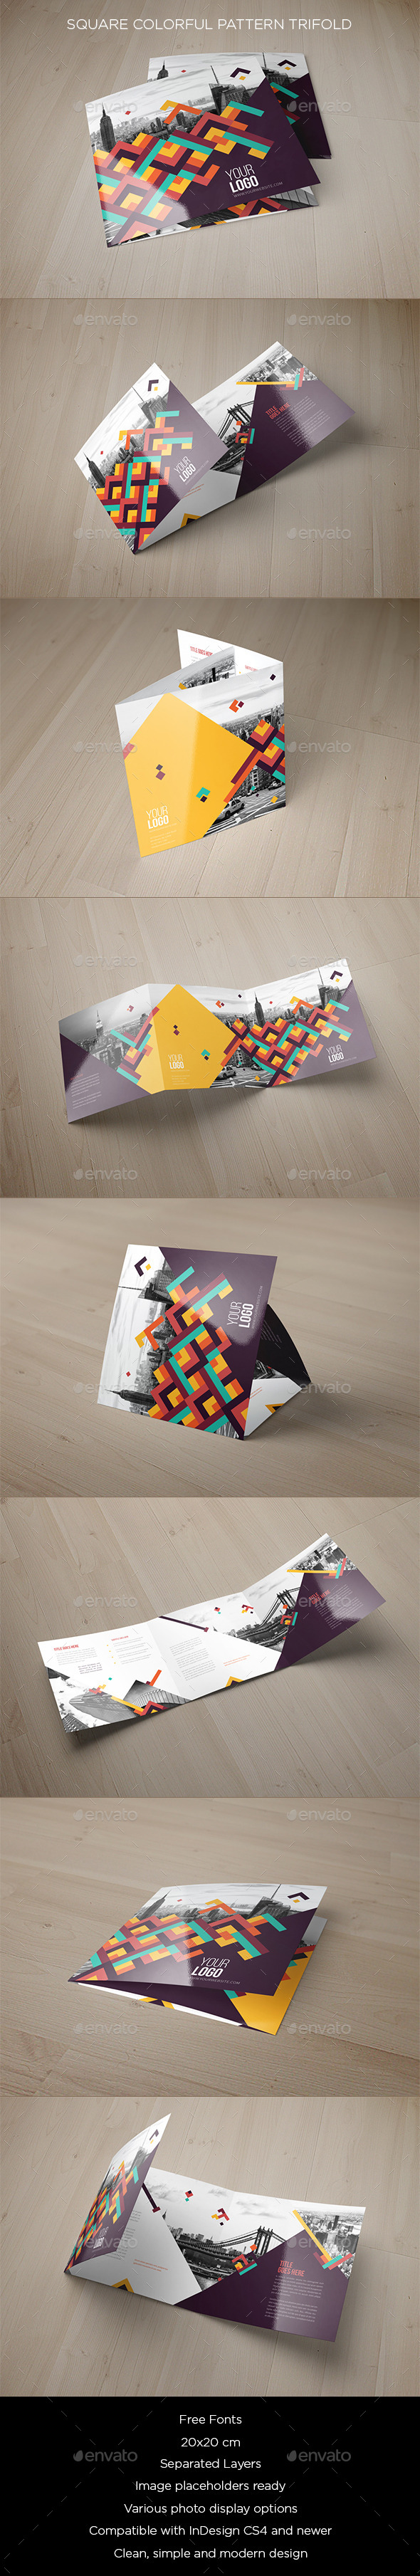 Square Colorful Pattern Trifold